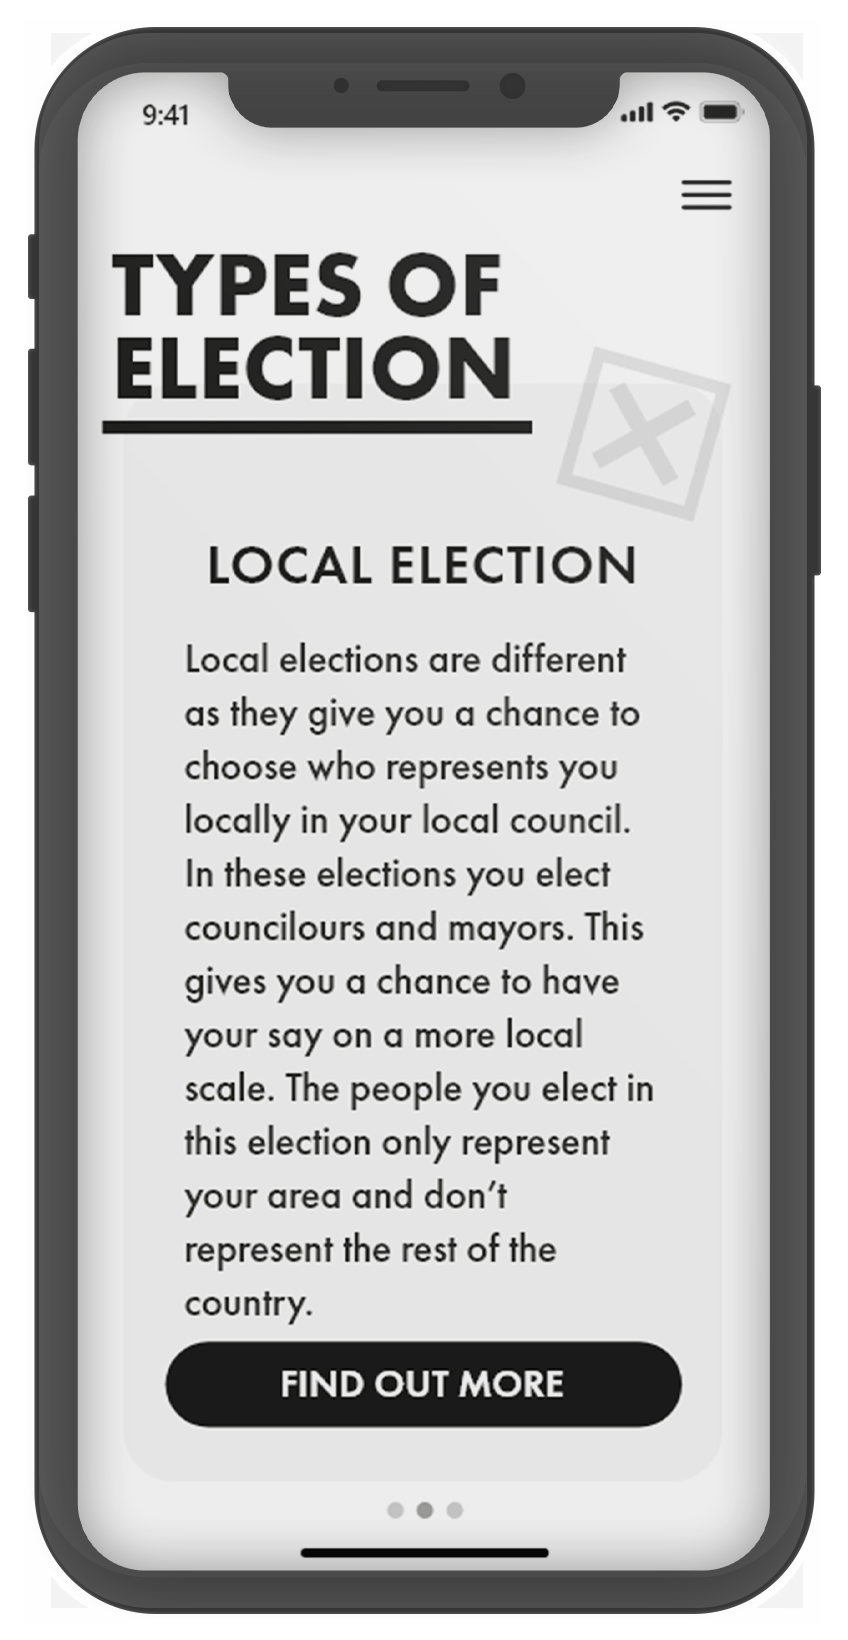 LocalElection.png